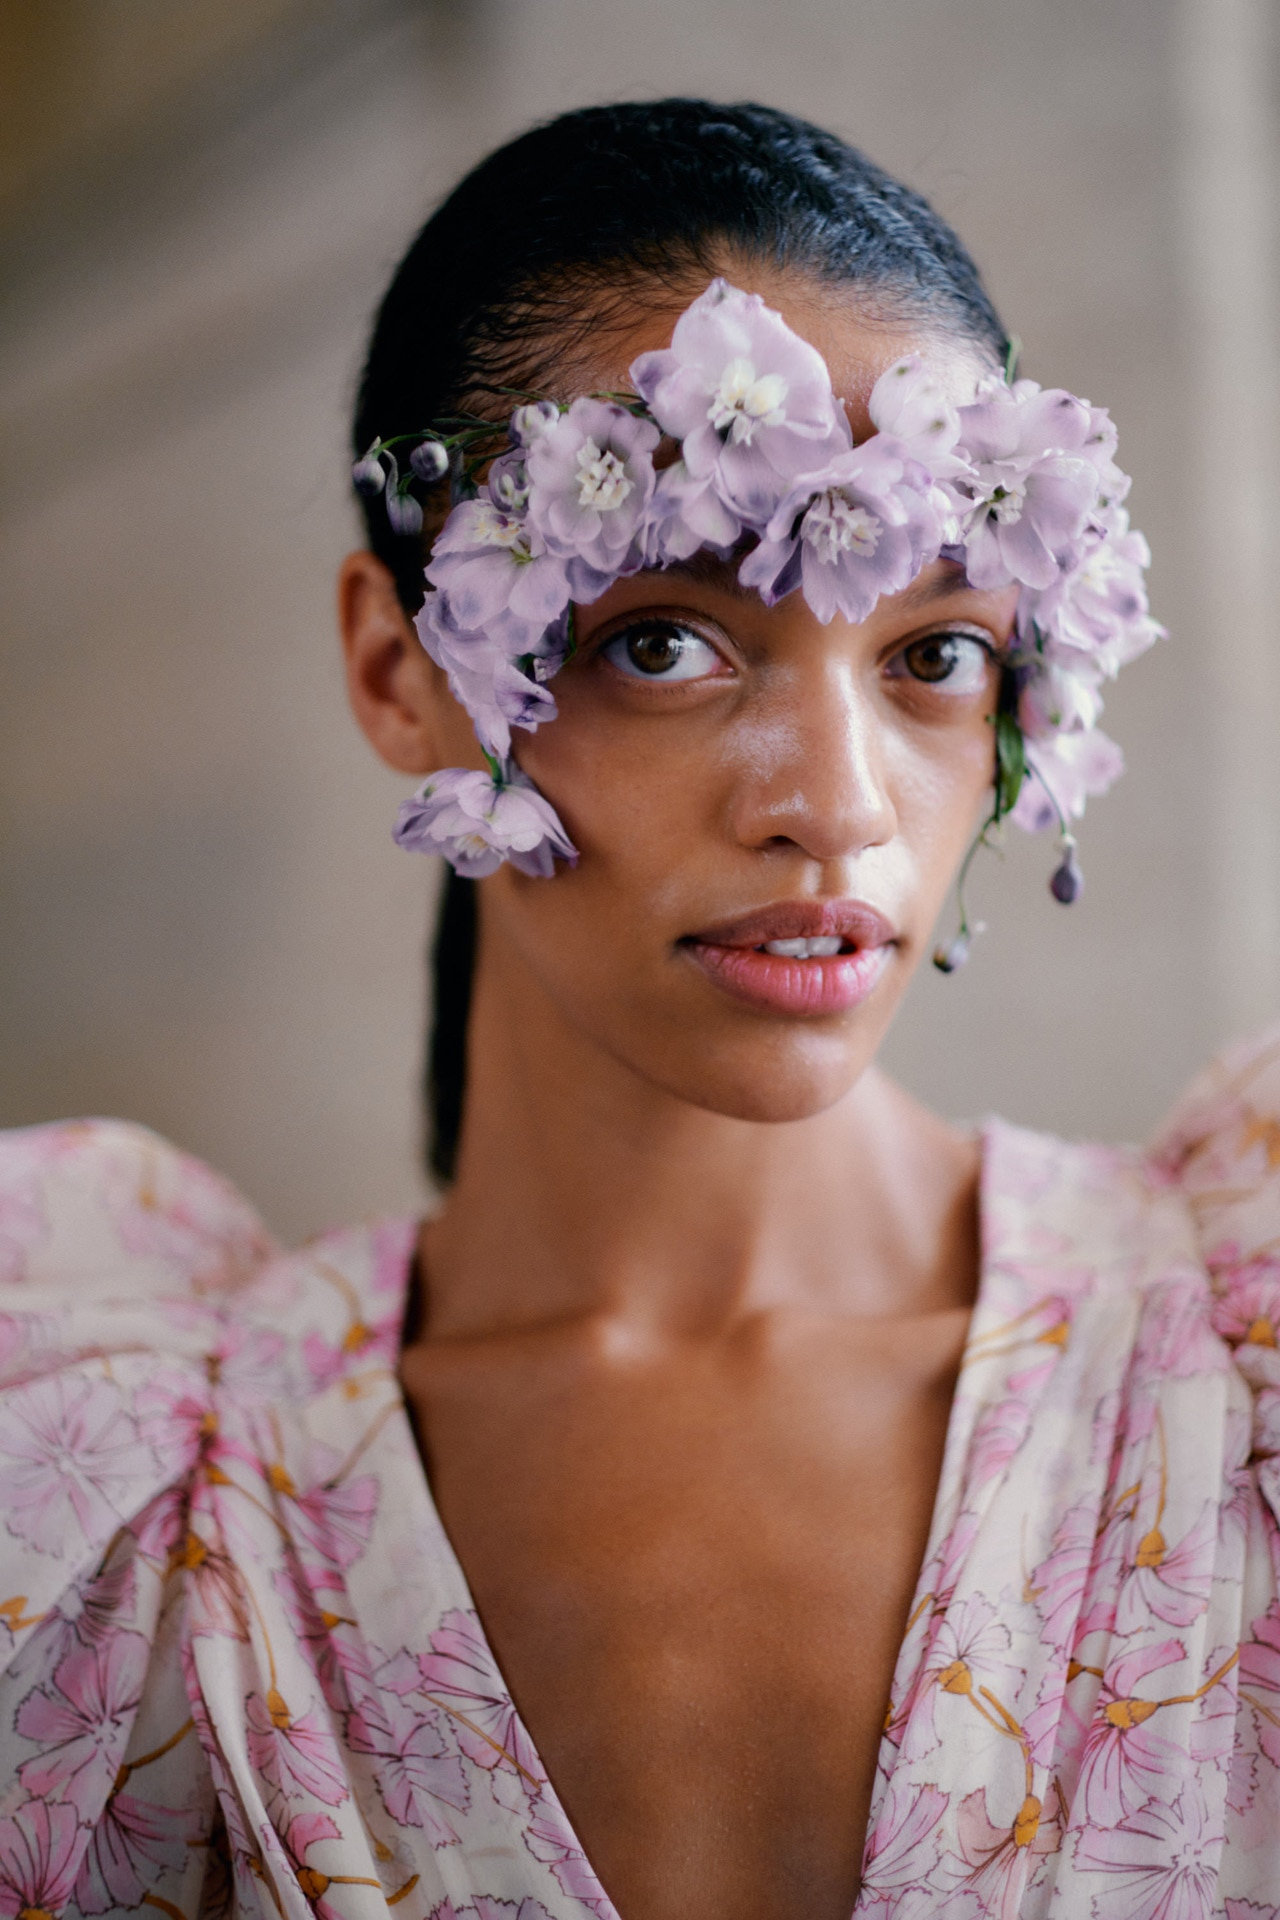 The best backstage moments from fashion month spring/summer 2020